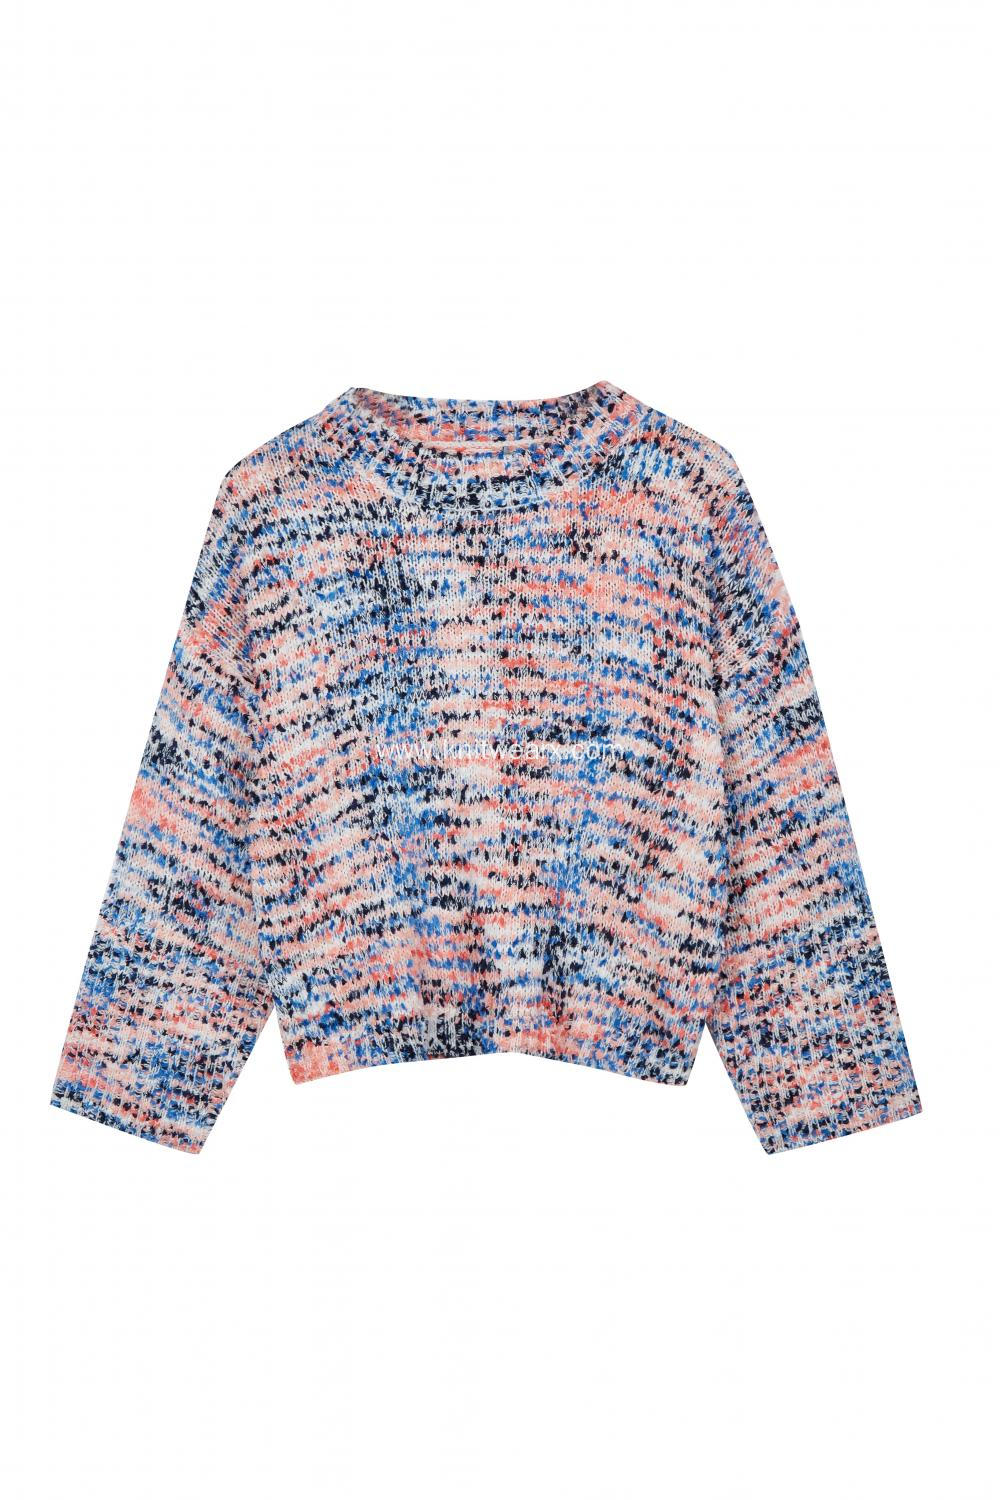 Women's Knitted Colorful Neps Batwing Crew-Neck Pullover